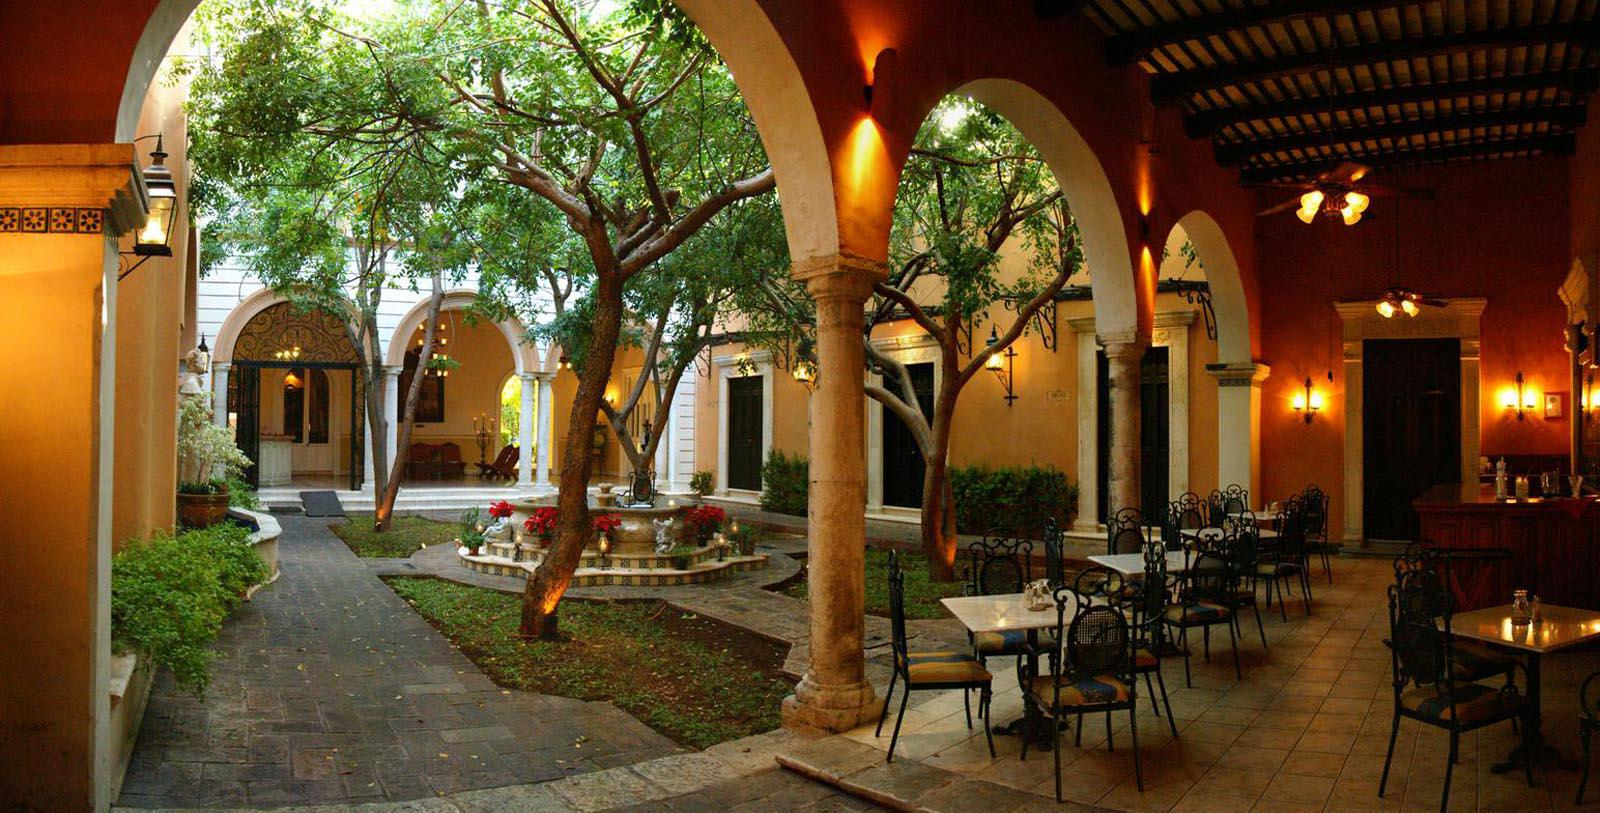 Image of Fountain and Outdoor Seating La Misión de Fray Diego, 1867, Member of Historic Hotels Worldwide, in Merida, Mexico, Discover